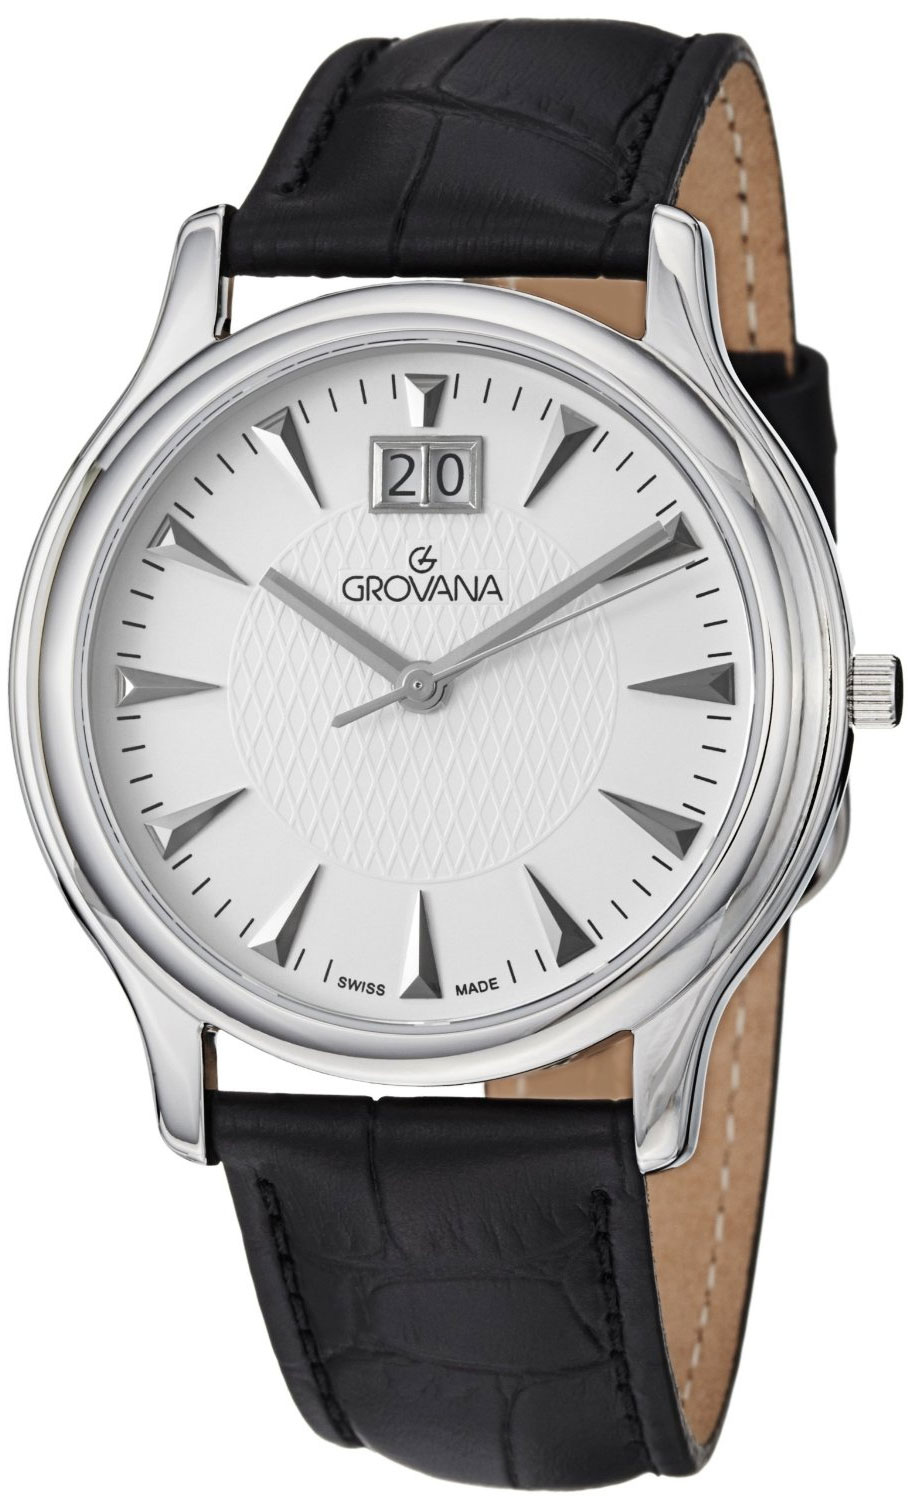 Image of Grovana Traditional Mens Watch Model 1030.1532